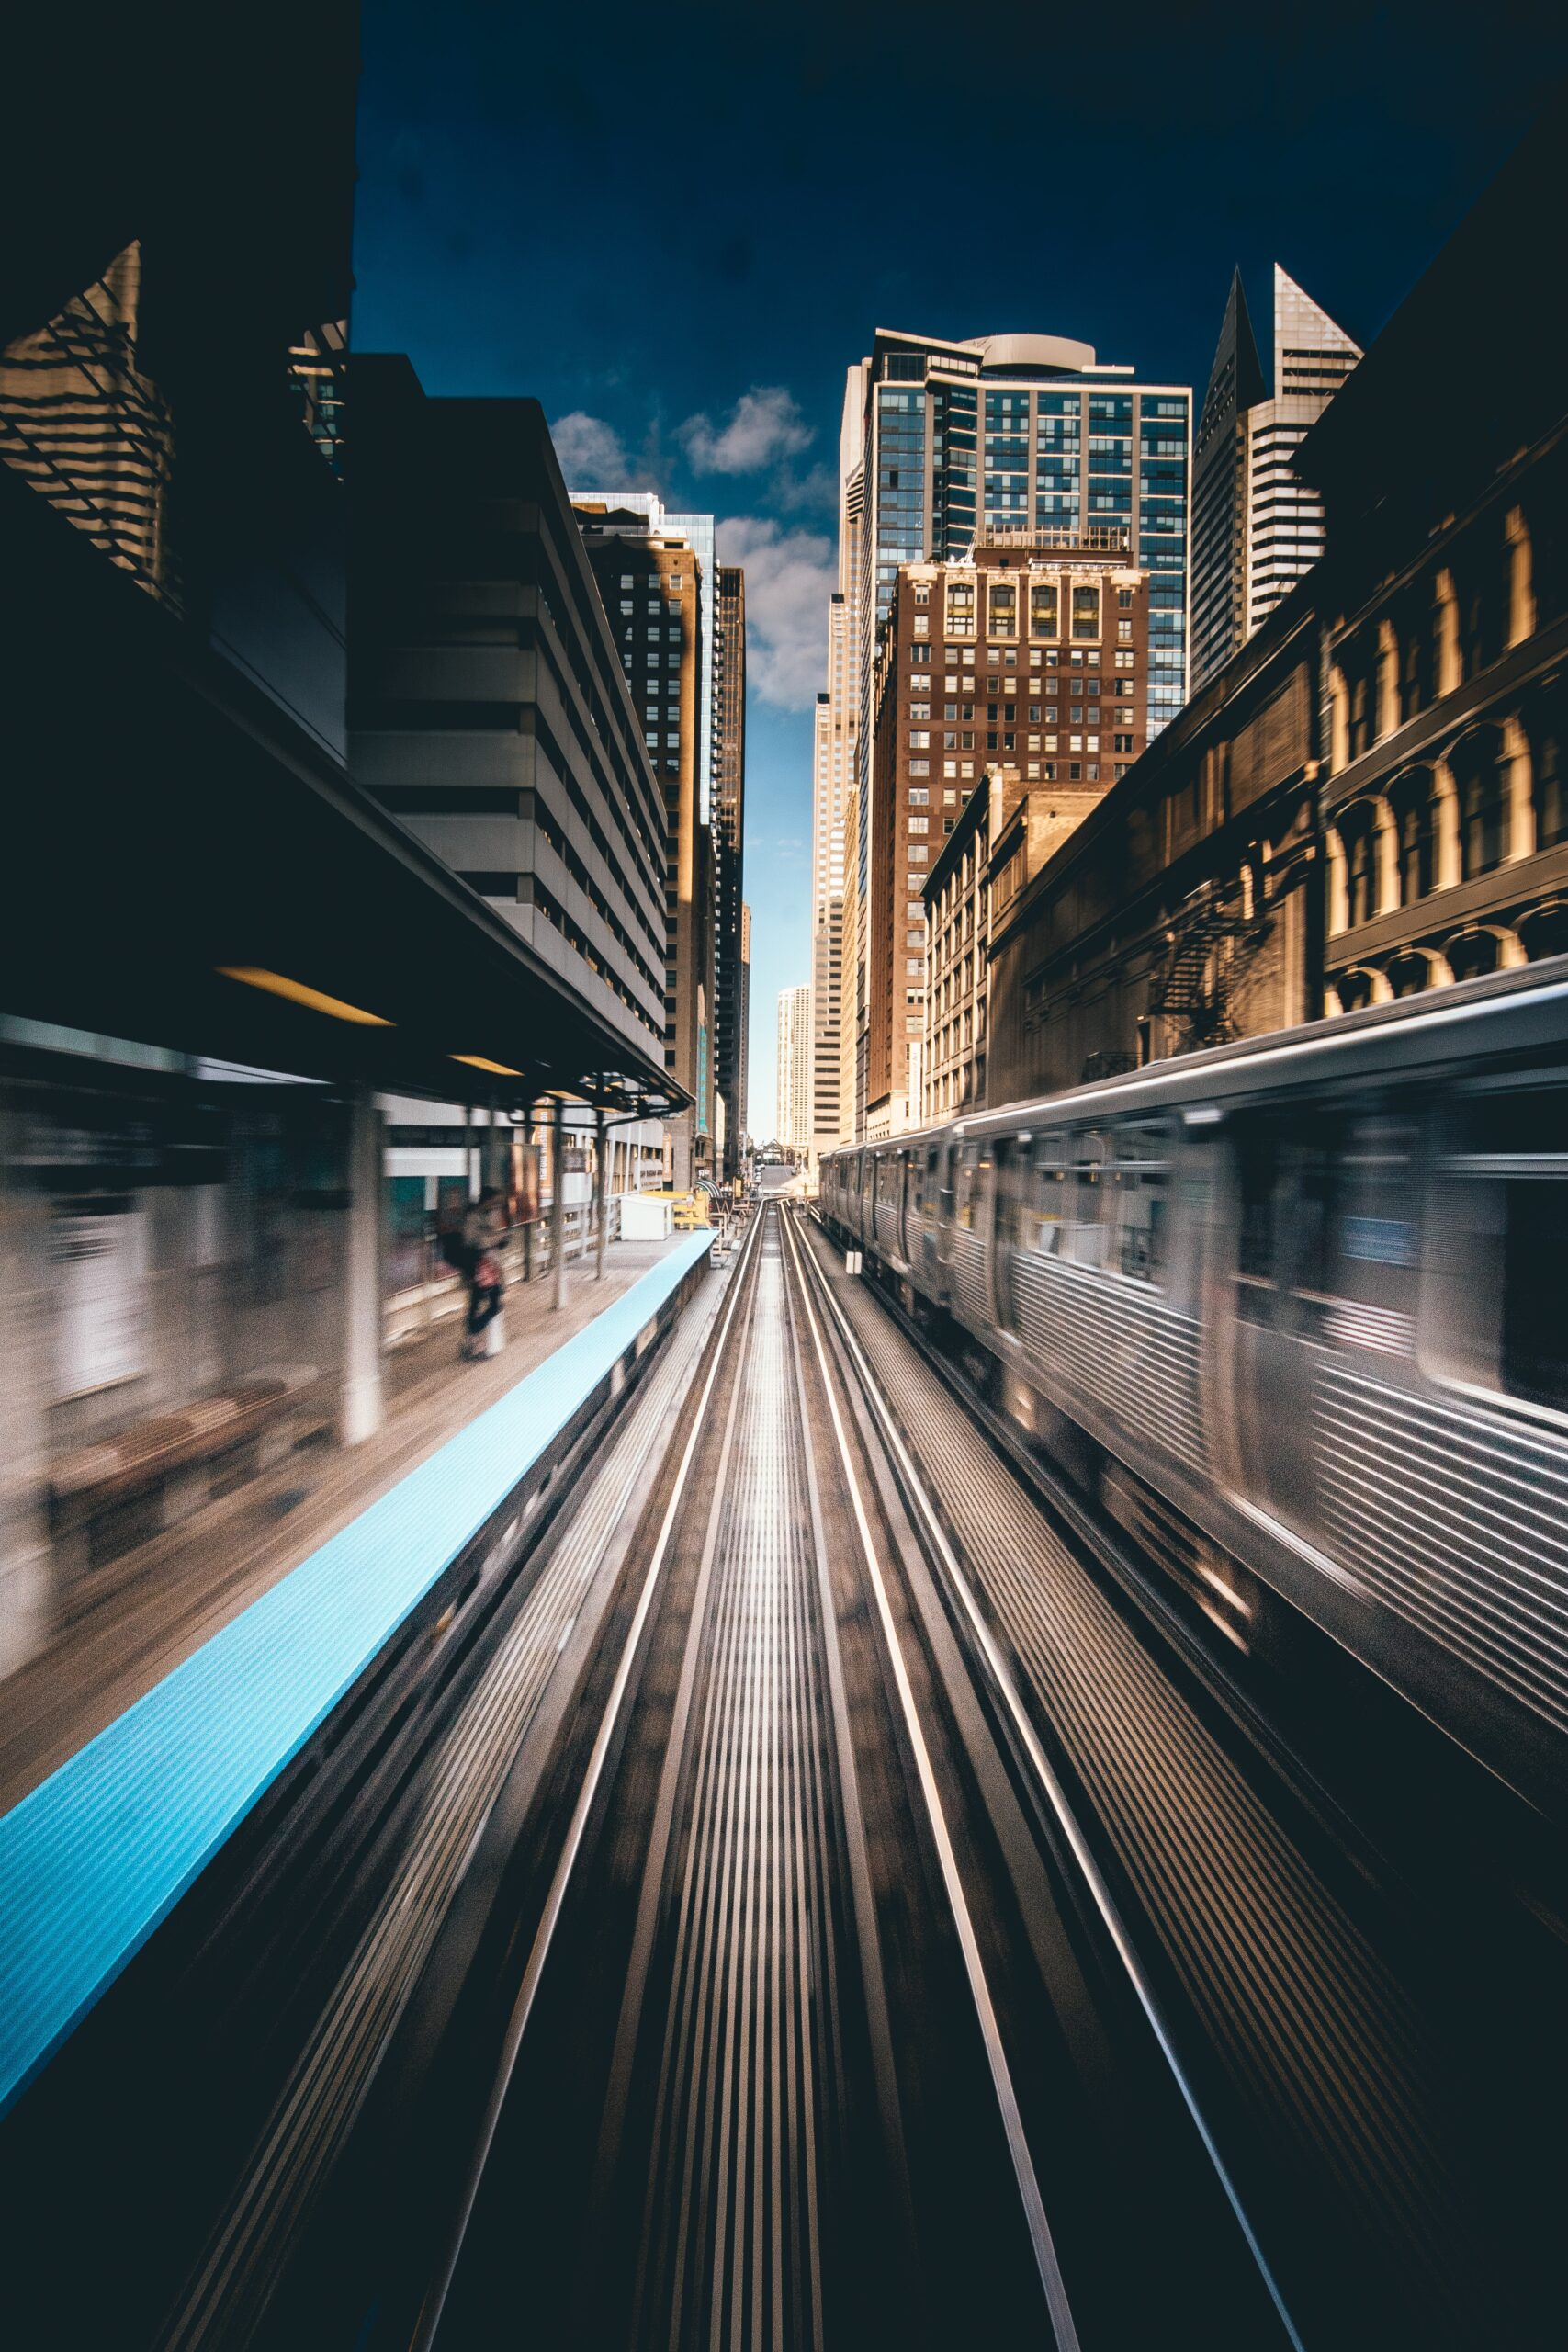 Everything else going on in transportation and shared mobility